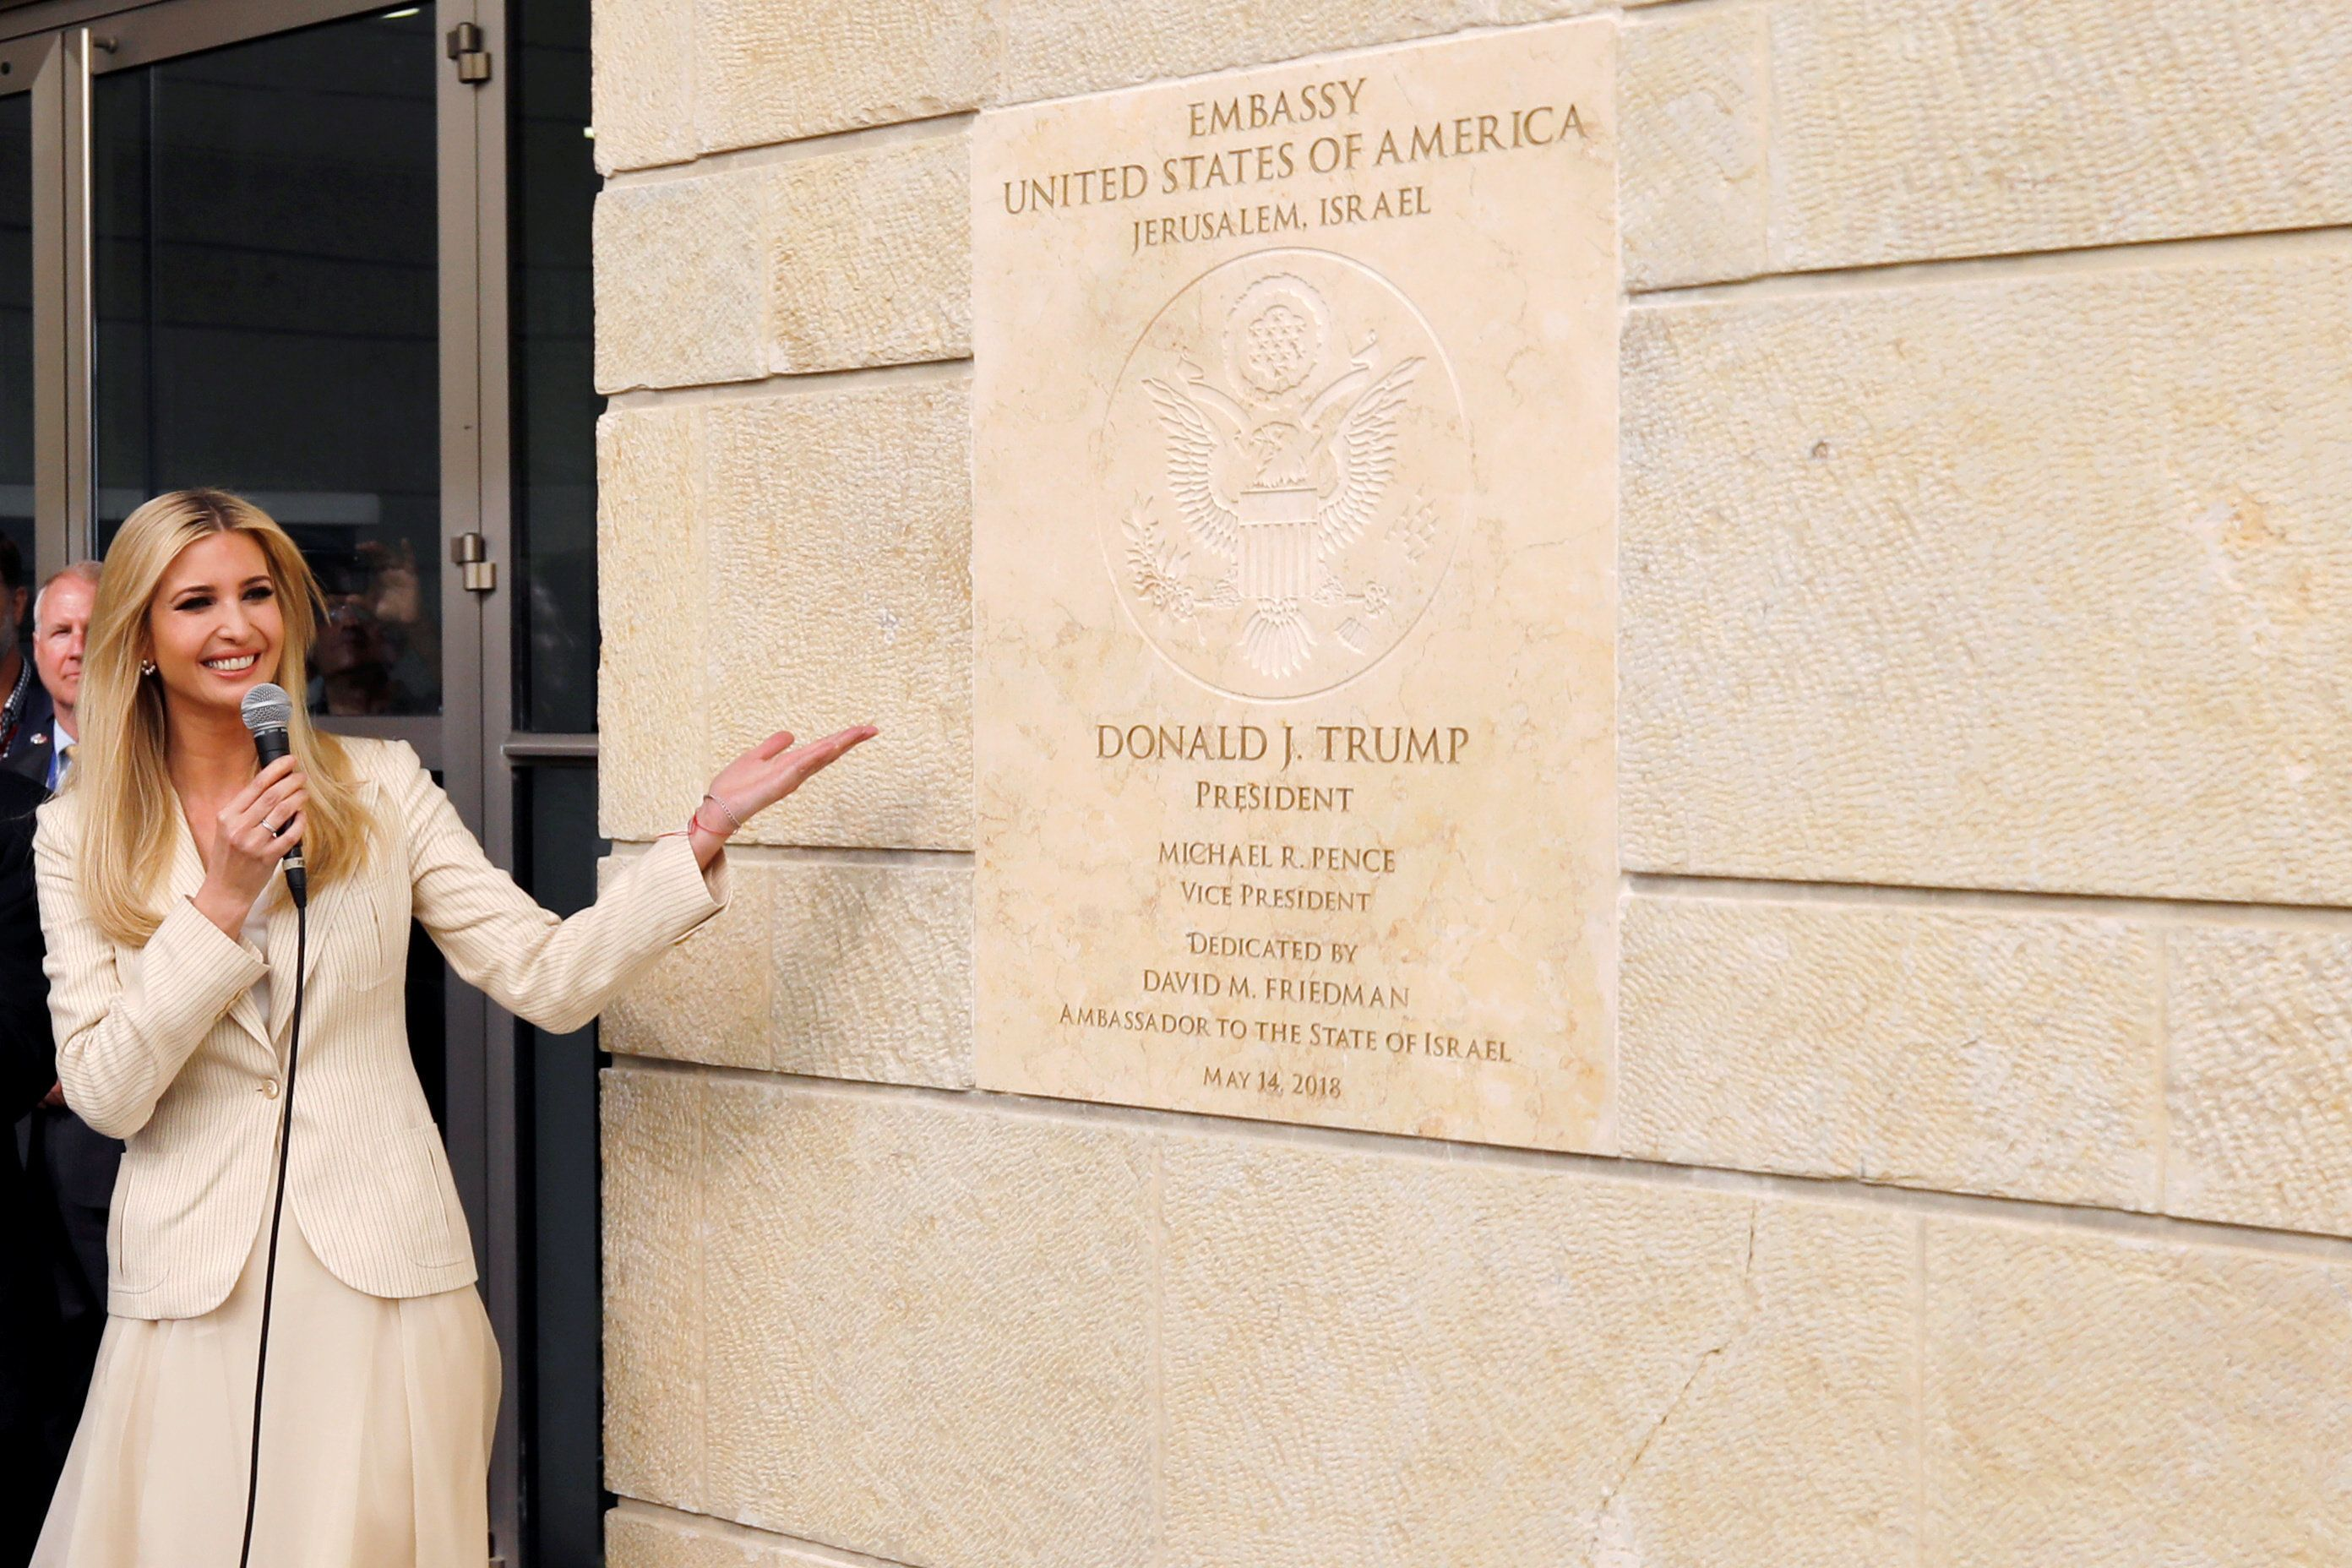 Senior White House Adviser Ivanka Trump gestures as she stands next to the dedication plaque at the U.S. embassy in Jerusalem, during the dedication ceremony of the new U.S. embassy in Jerusalem, May 14, 2018. REUTERS/Ronen Zvulun